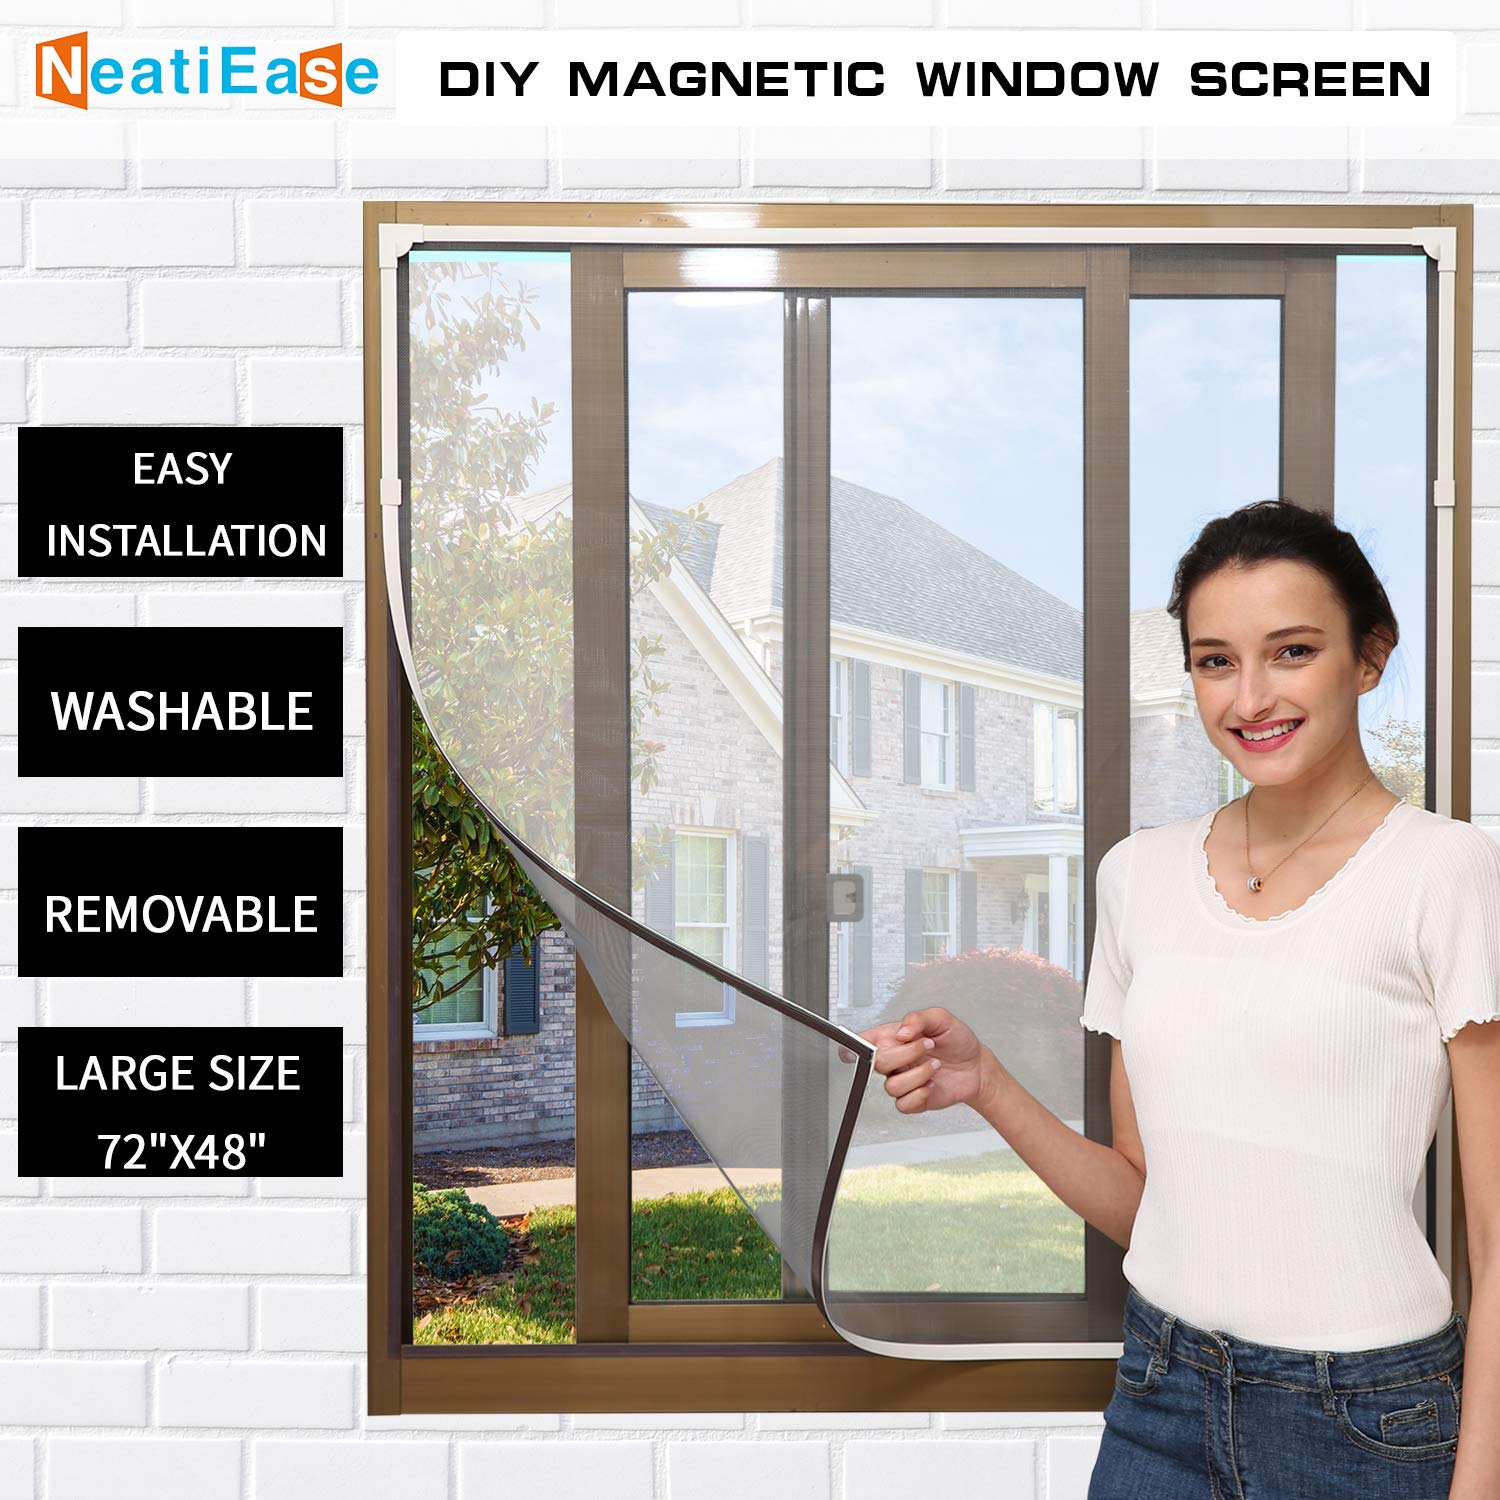 NeatiEase Adjustable DIY Magnetic Window Screen Max 72'' x 48'' Fits Any Size Smaller with White Frame Fiberglass Mesh